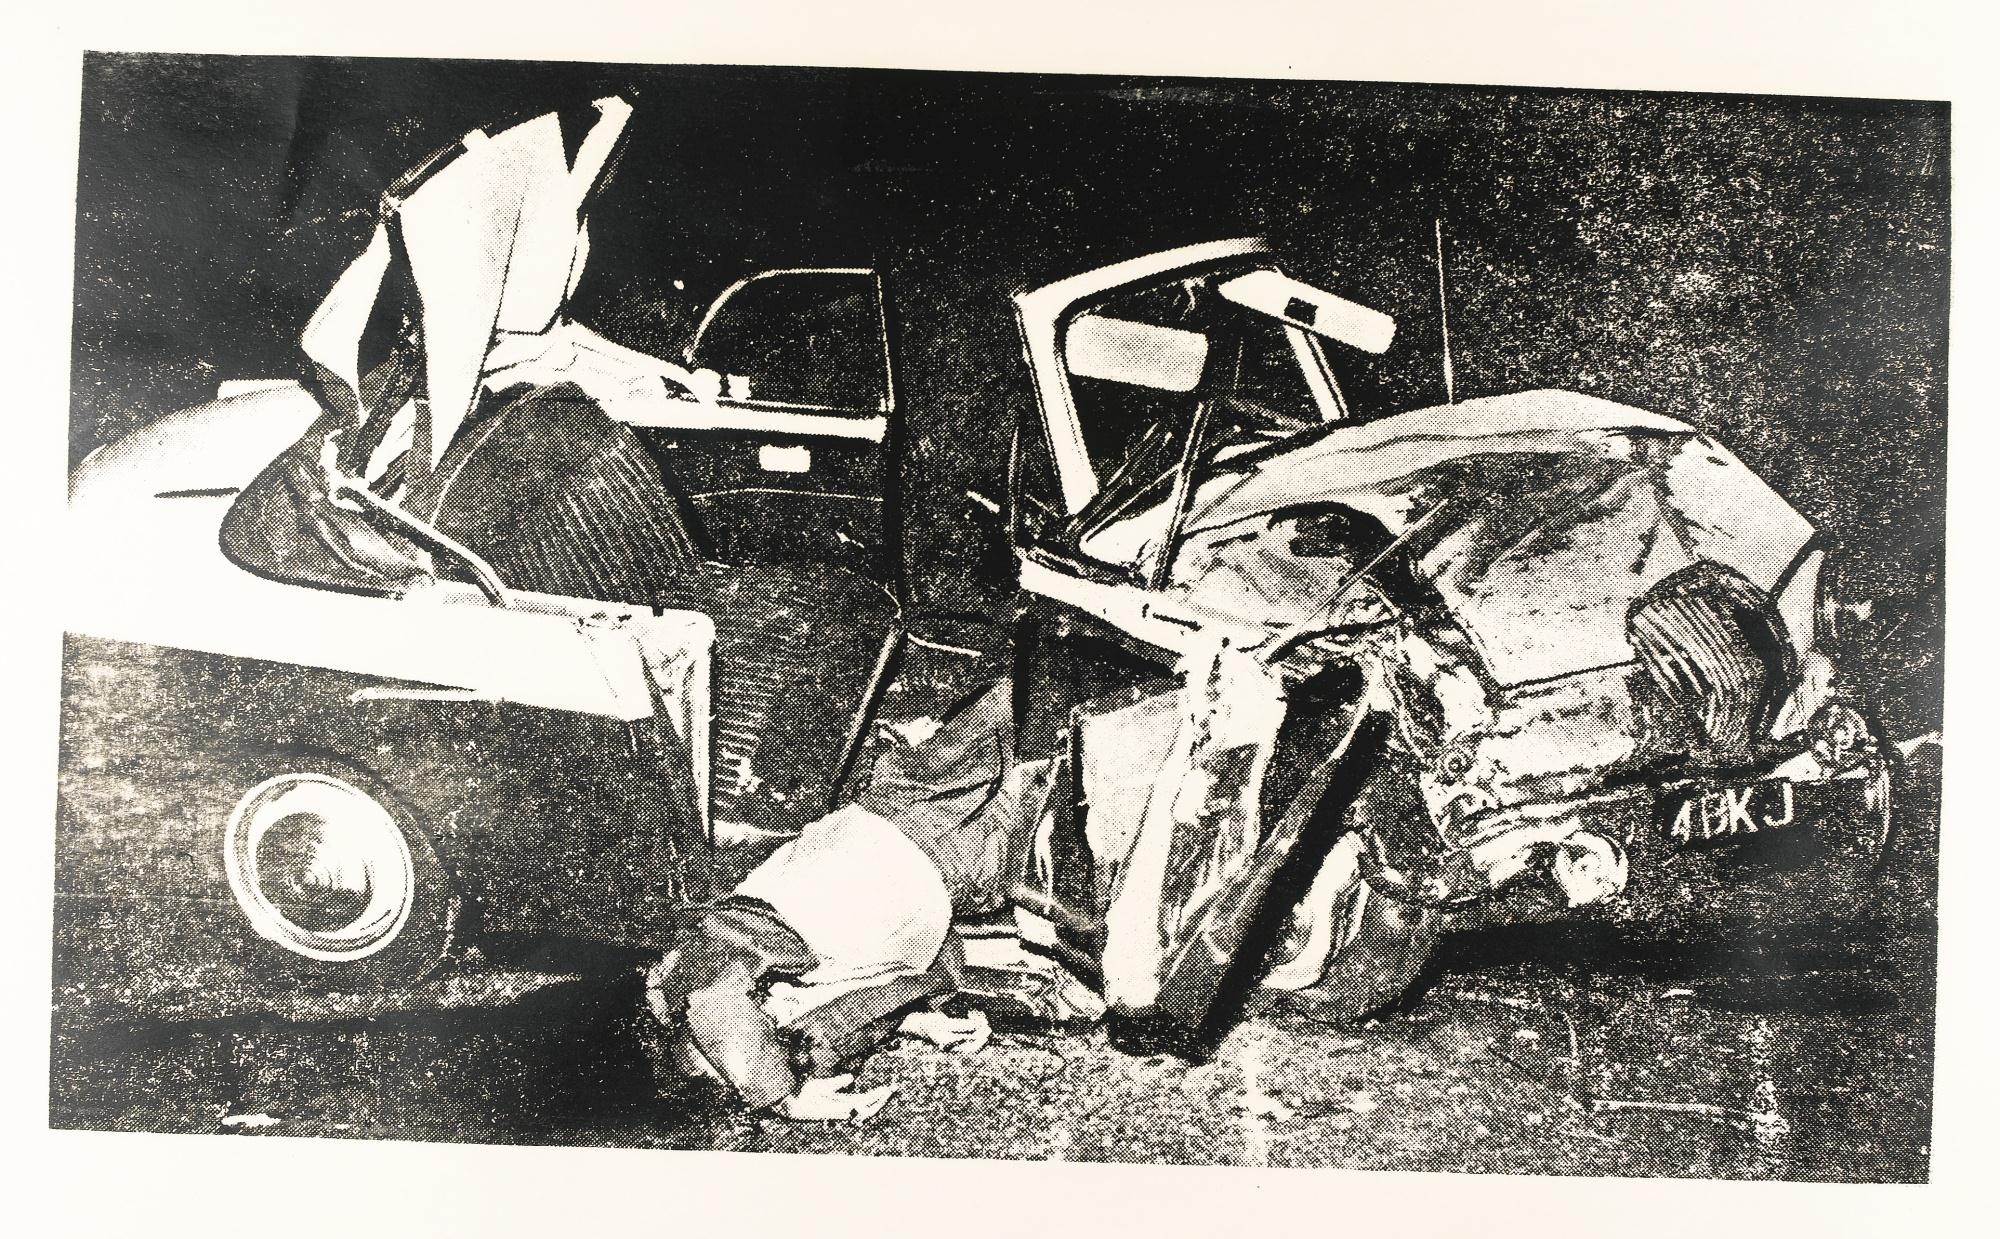 Andy Warhol Car Accident